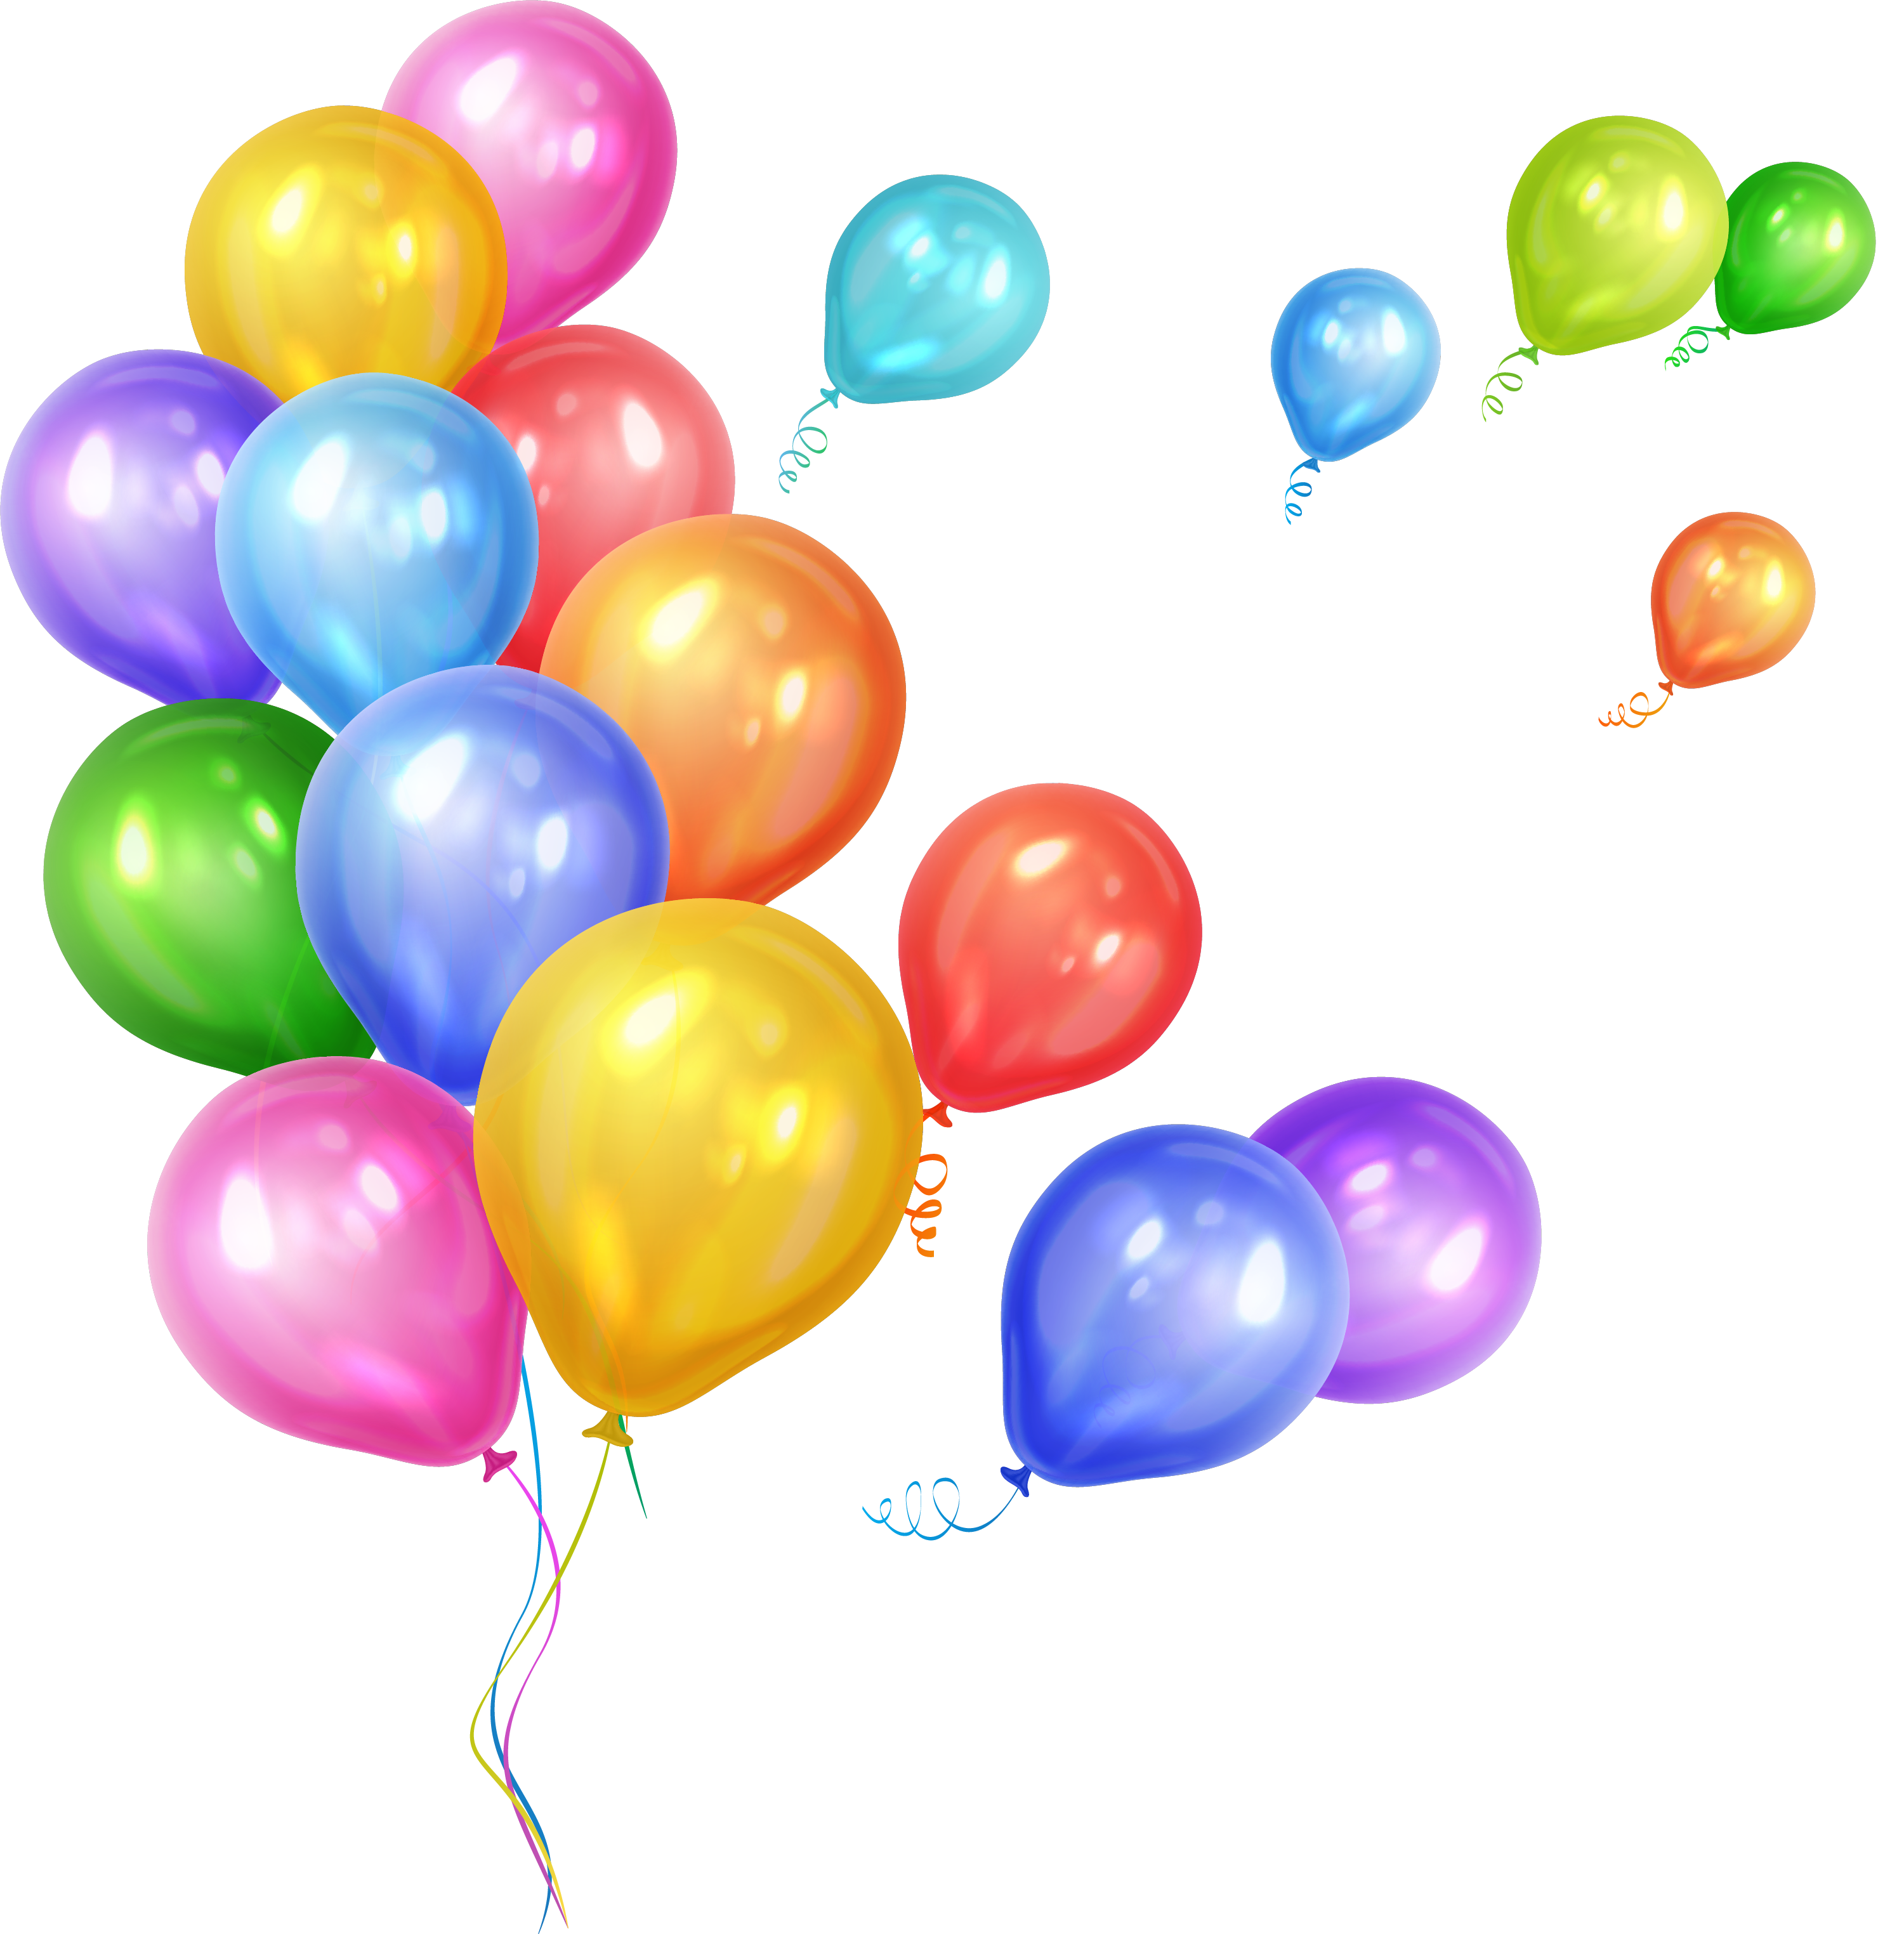 kisspng-gas-balloon-party-birthday-colorful-dream-balloon-5a9c0809f337f8.7603221815201751139962